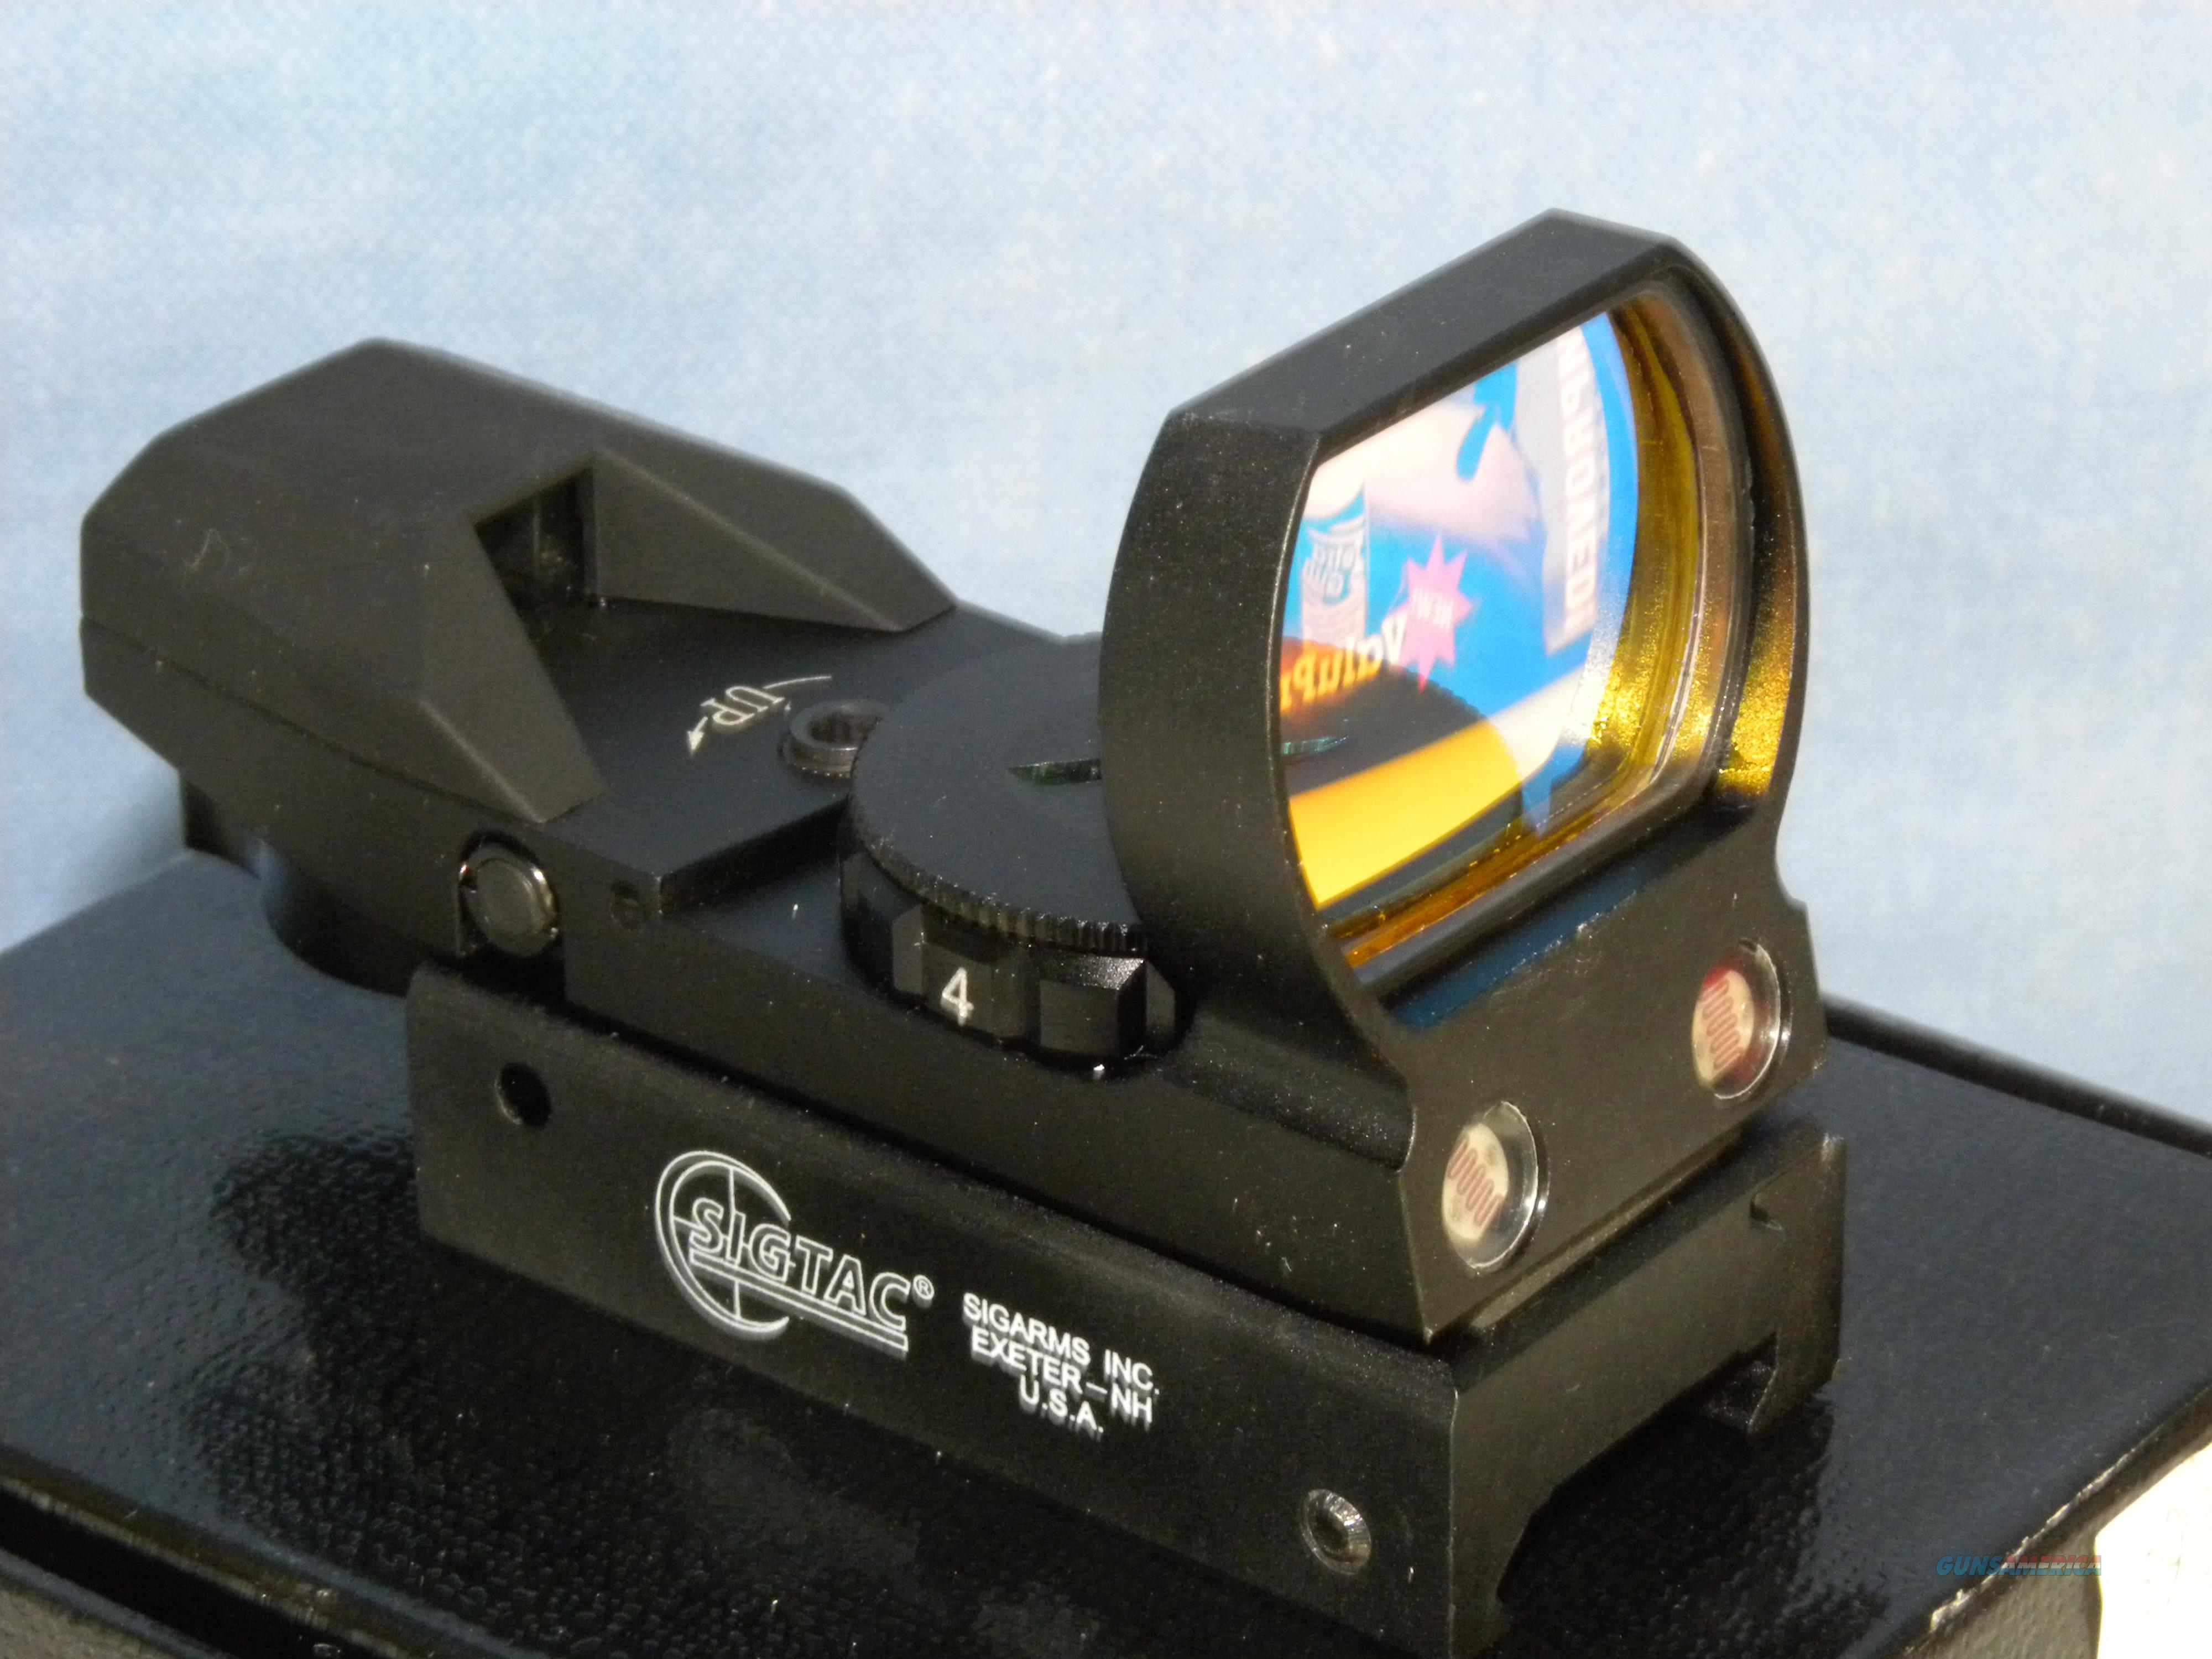 Sig Sauer SIGTAC Holosight  Non-Guns > Scopes/Mounts/Rings & Optics > Tactical Scopes > Variable Recticle